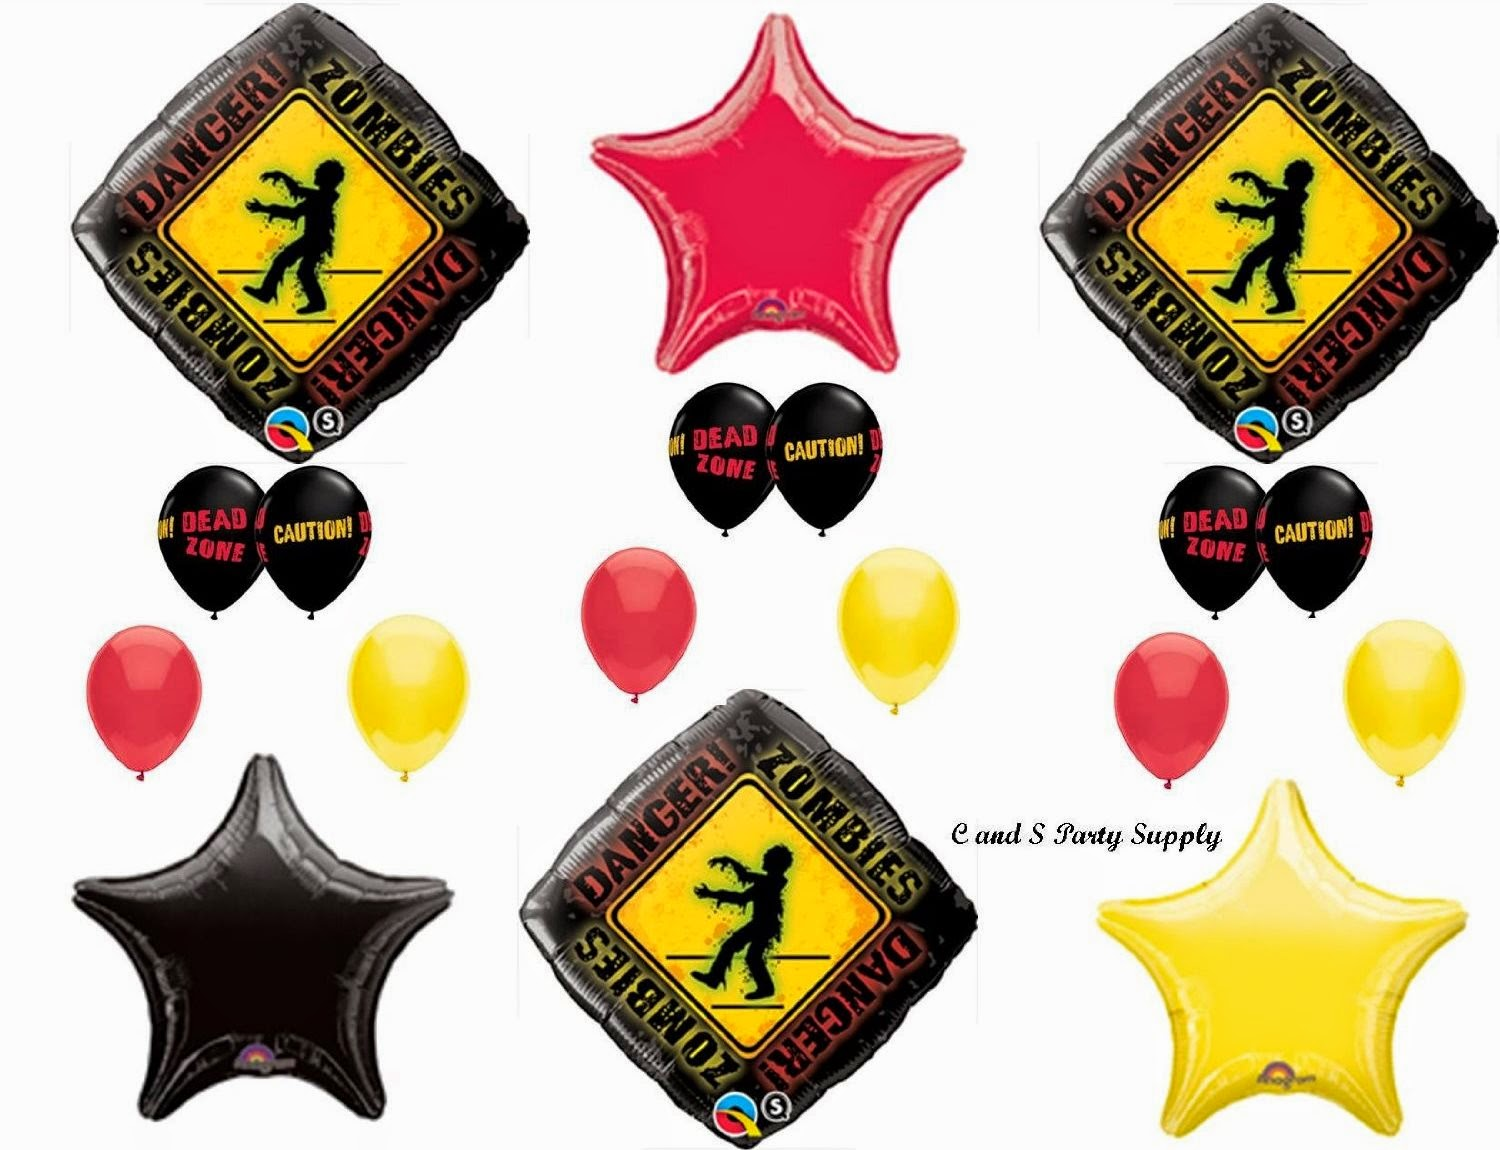 zombies the walking dead zone birthday party balloons - Zombie Party Supplies